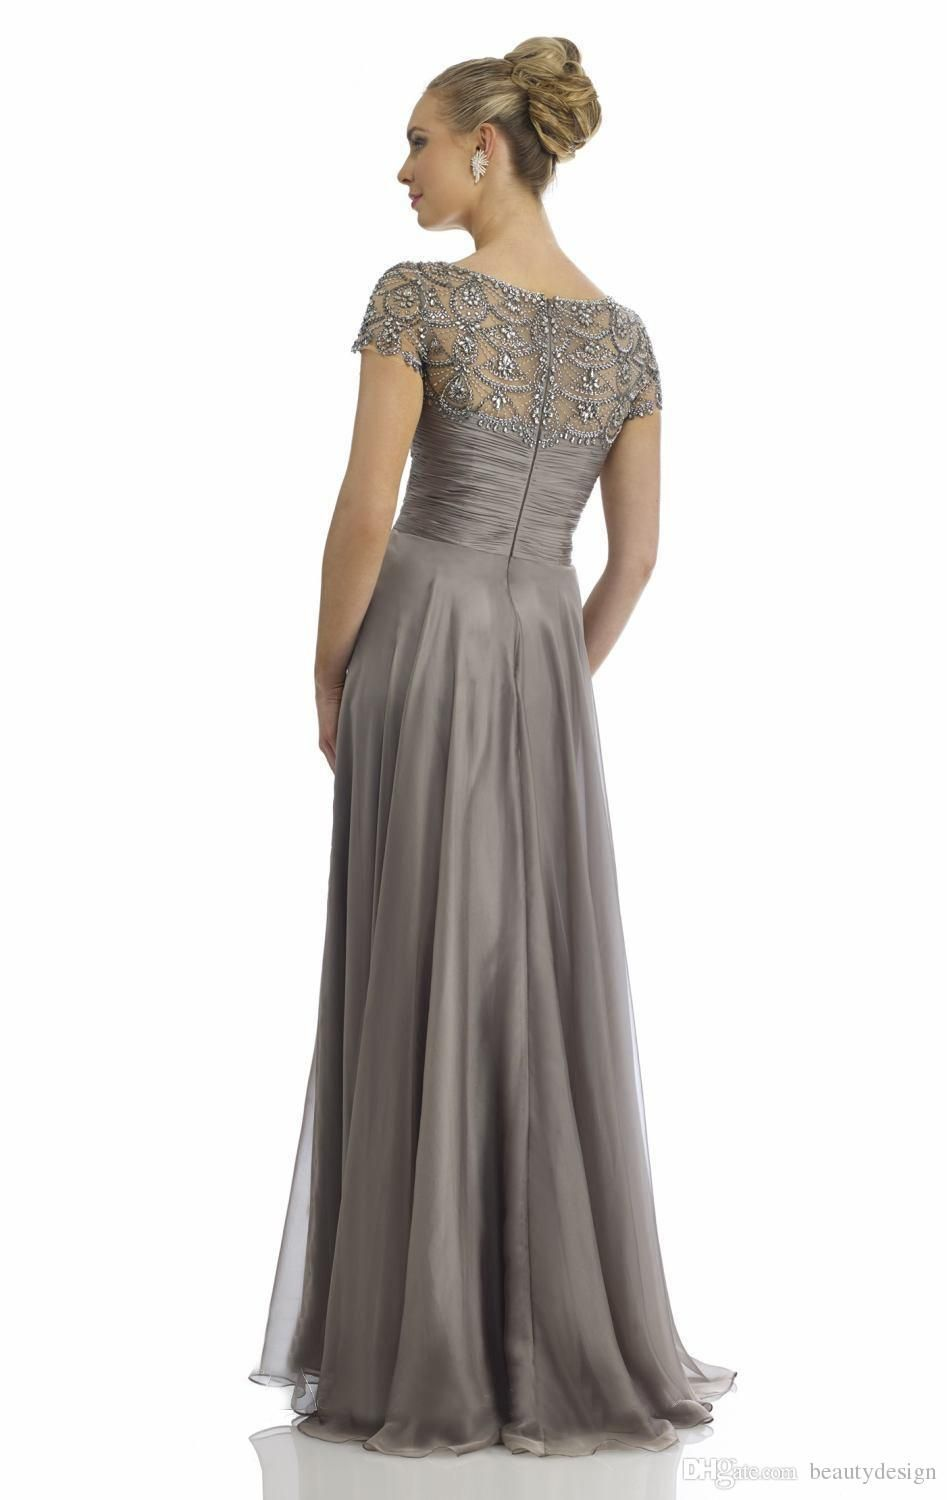 f66f67fb33 2016 formal mother off the bride dresses A line floor length cap sleeves  exquisite sequins beaded